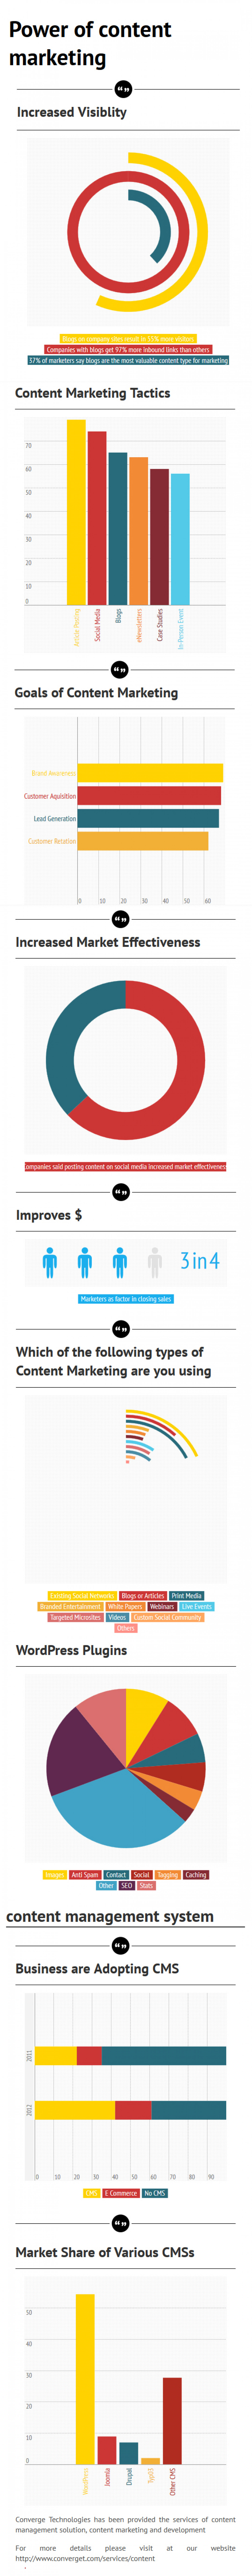 Types of Content Marketing Infographic